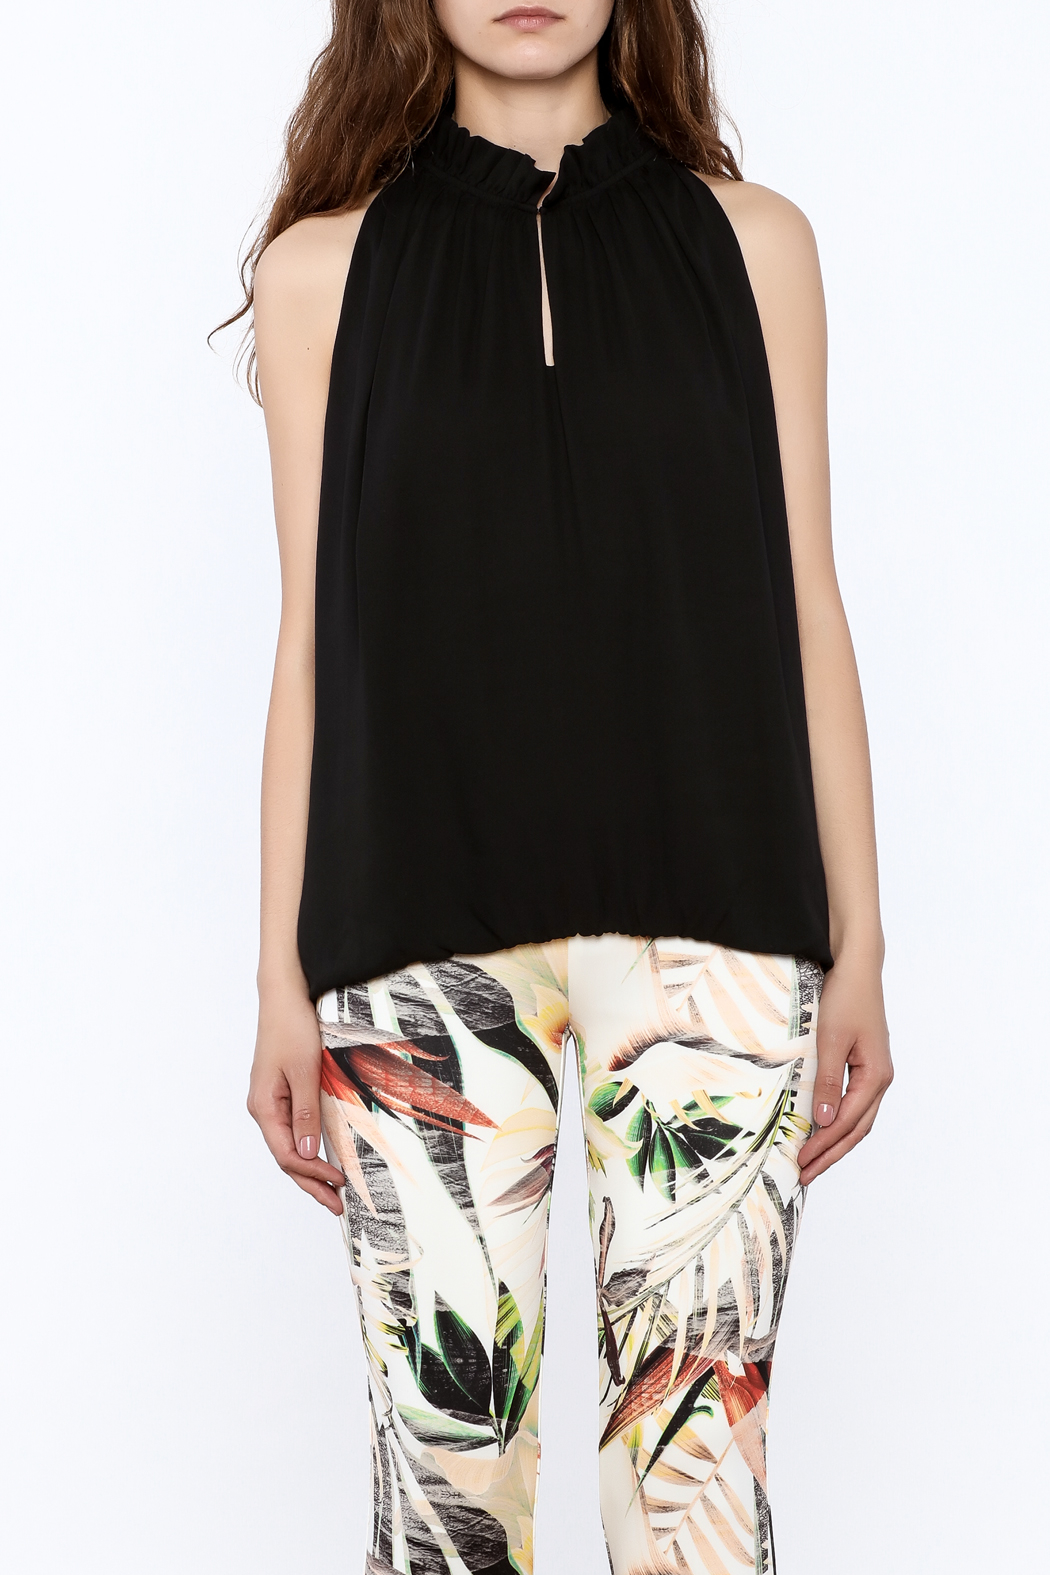 Dora Landa Black Sleeveless Flowy Top - Side Cropped Image